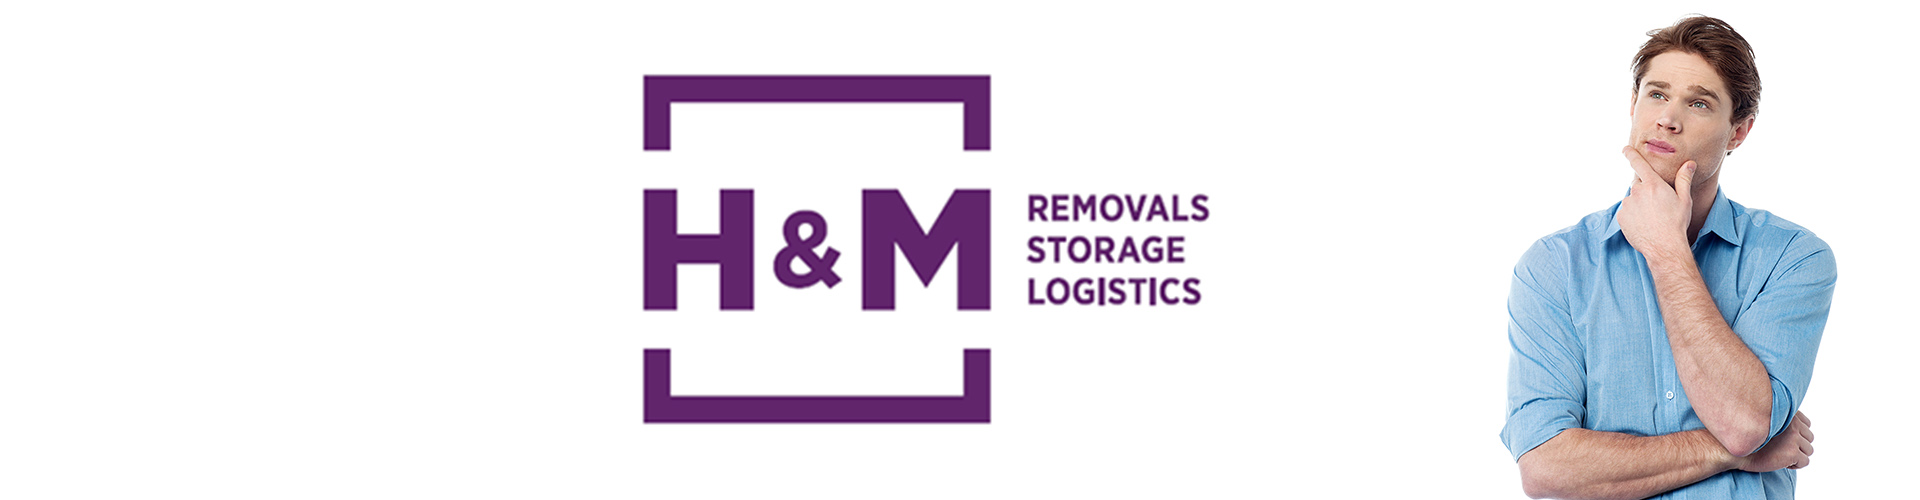 WHY H&M REMOVALs